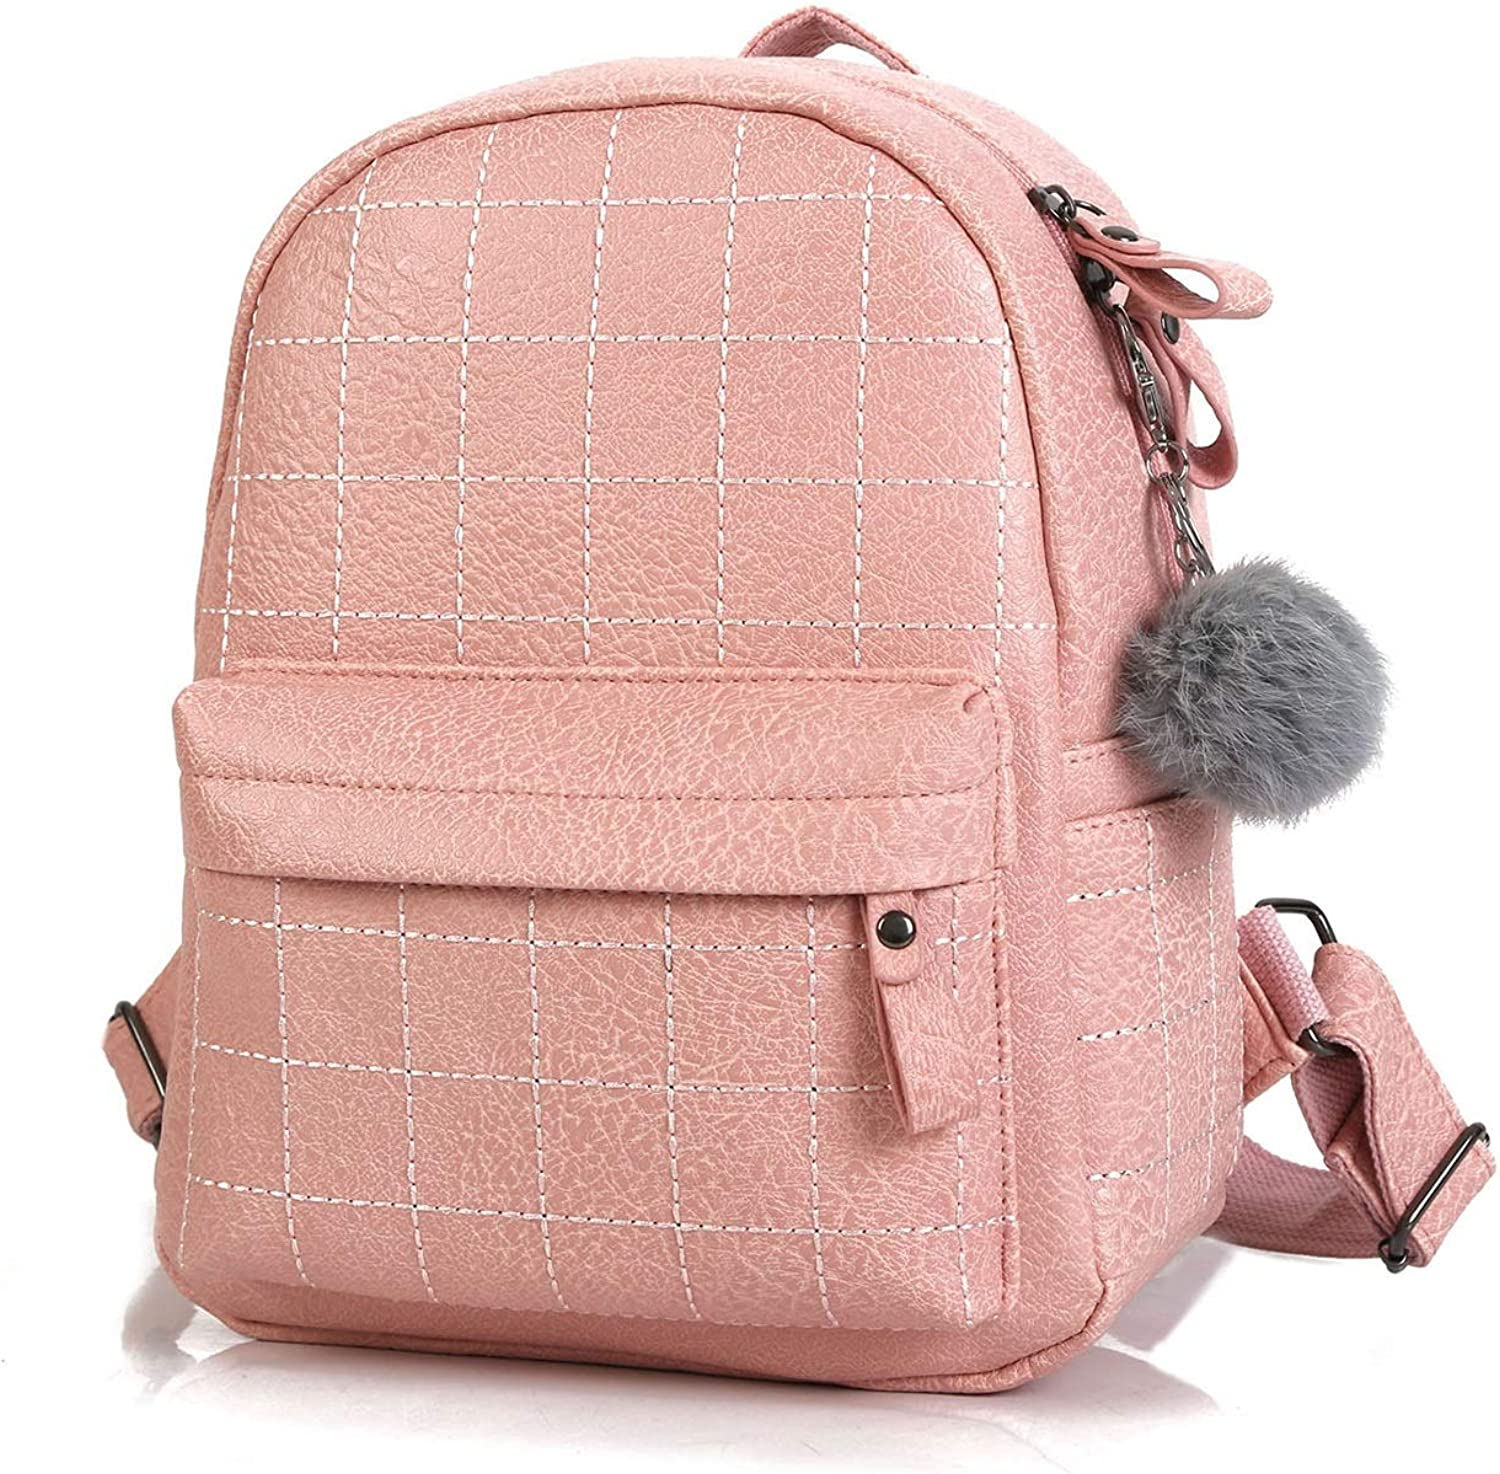 Women's Backpack Sweet Female Backpack Or Shoulder Bag with Hair Ball Pendant Suitable for Outdoor Travel Shopping (color   Pink)